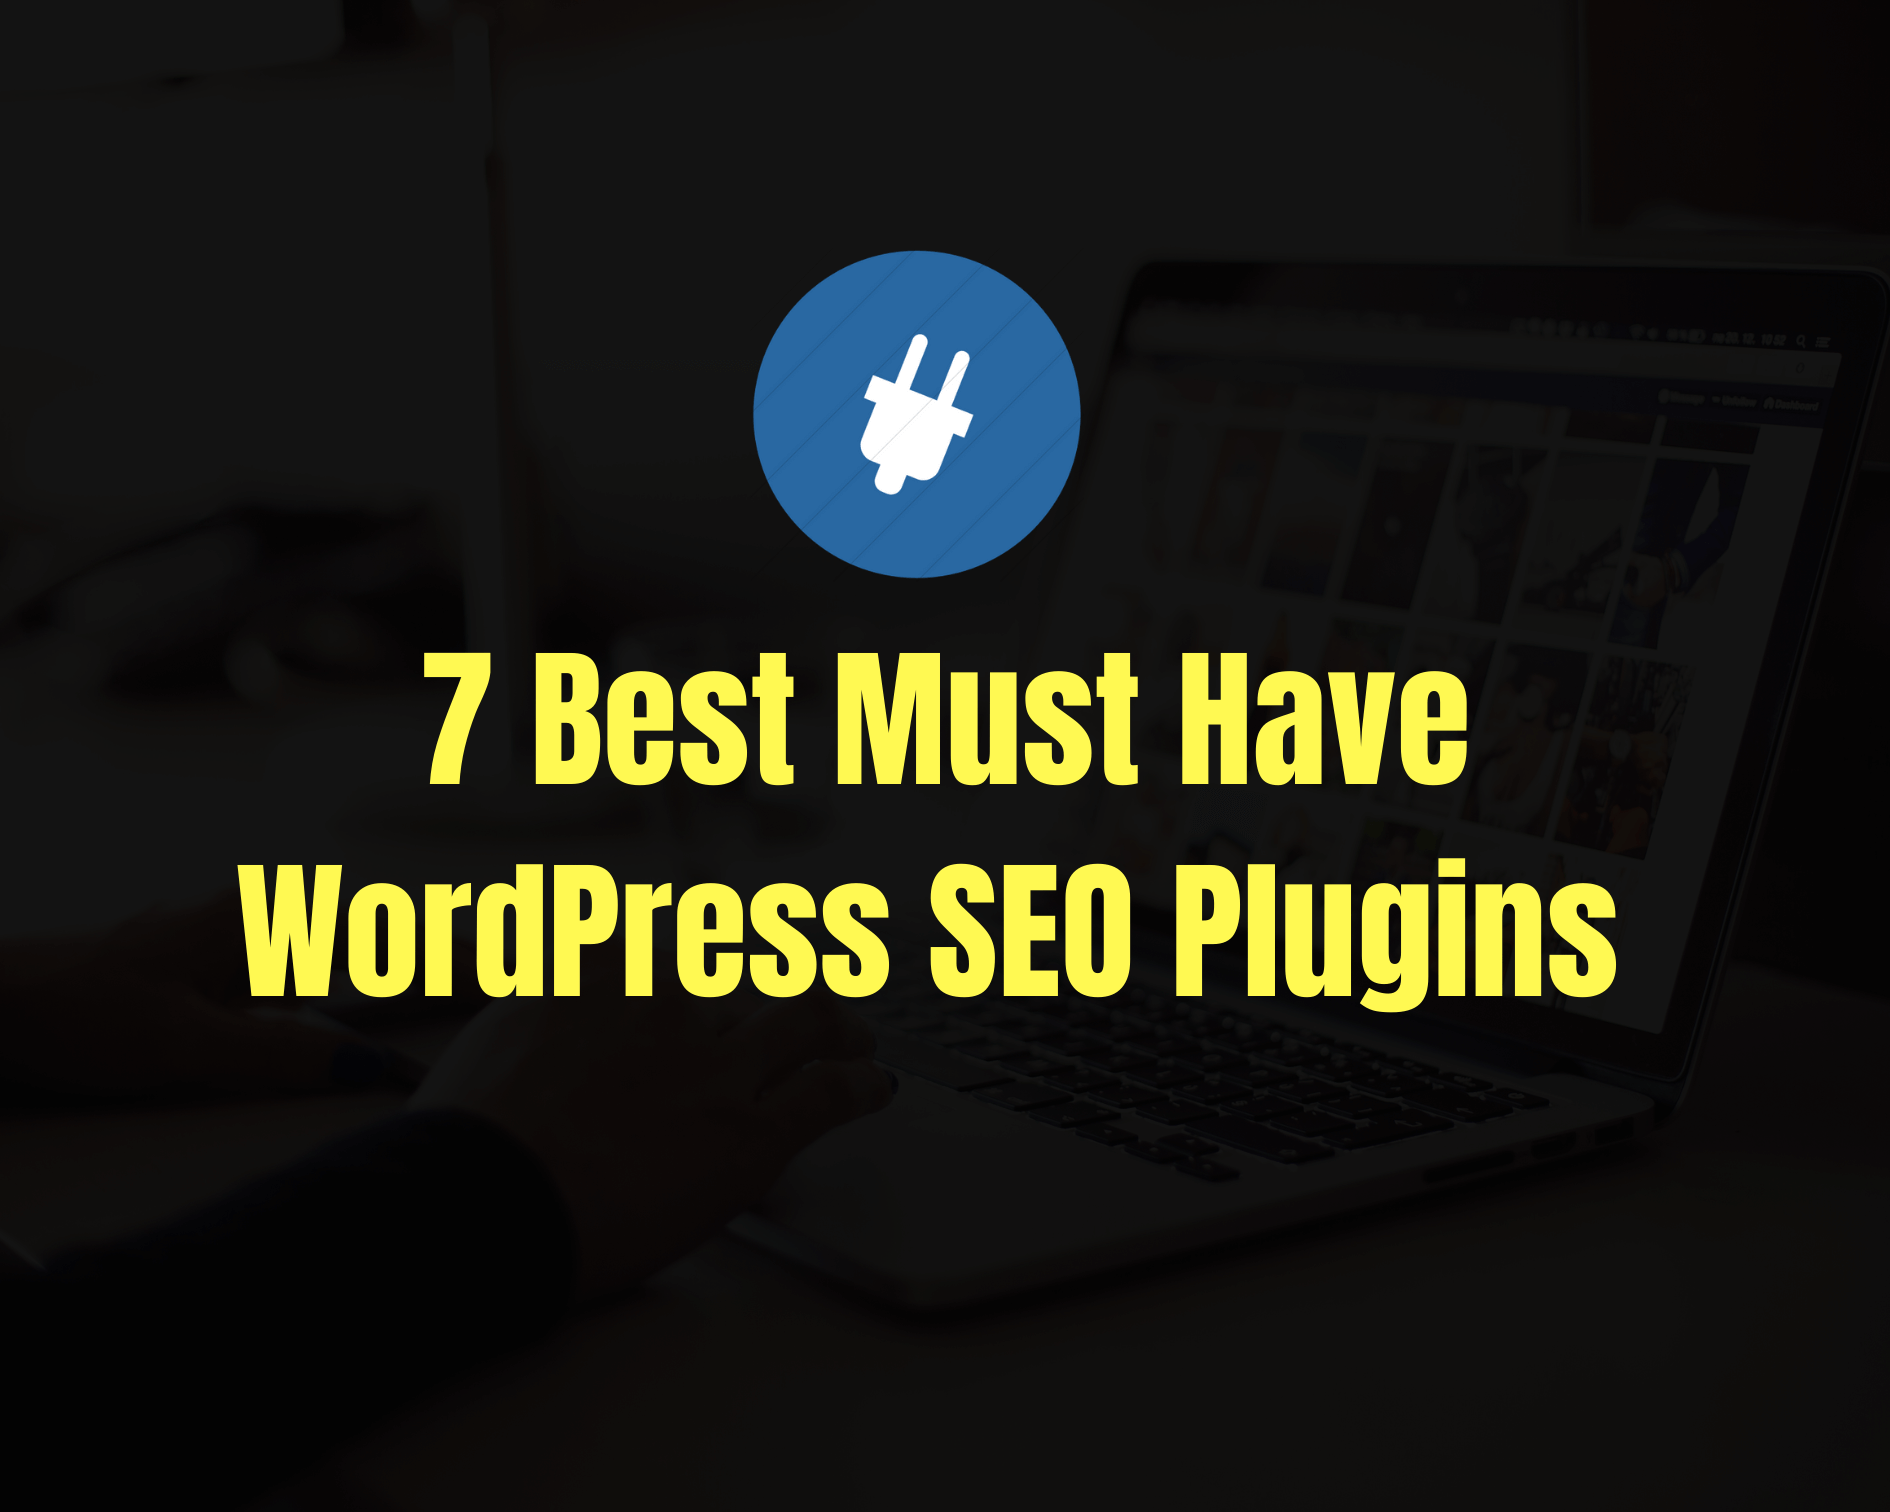 7 Best WordPress SEO Plugins You Must Have in 2020